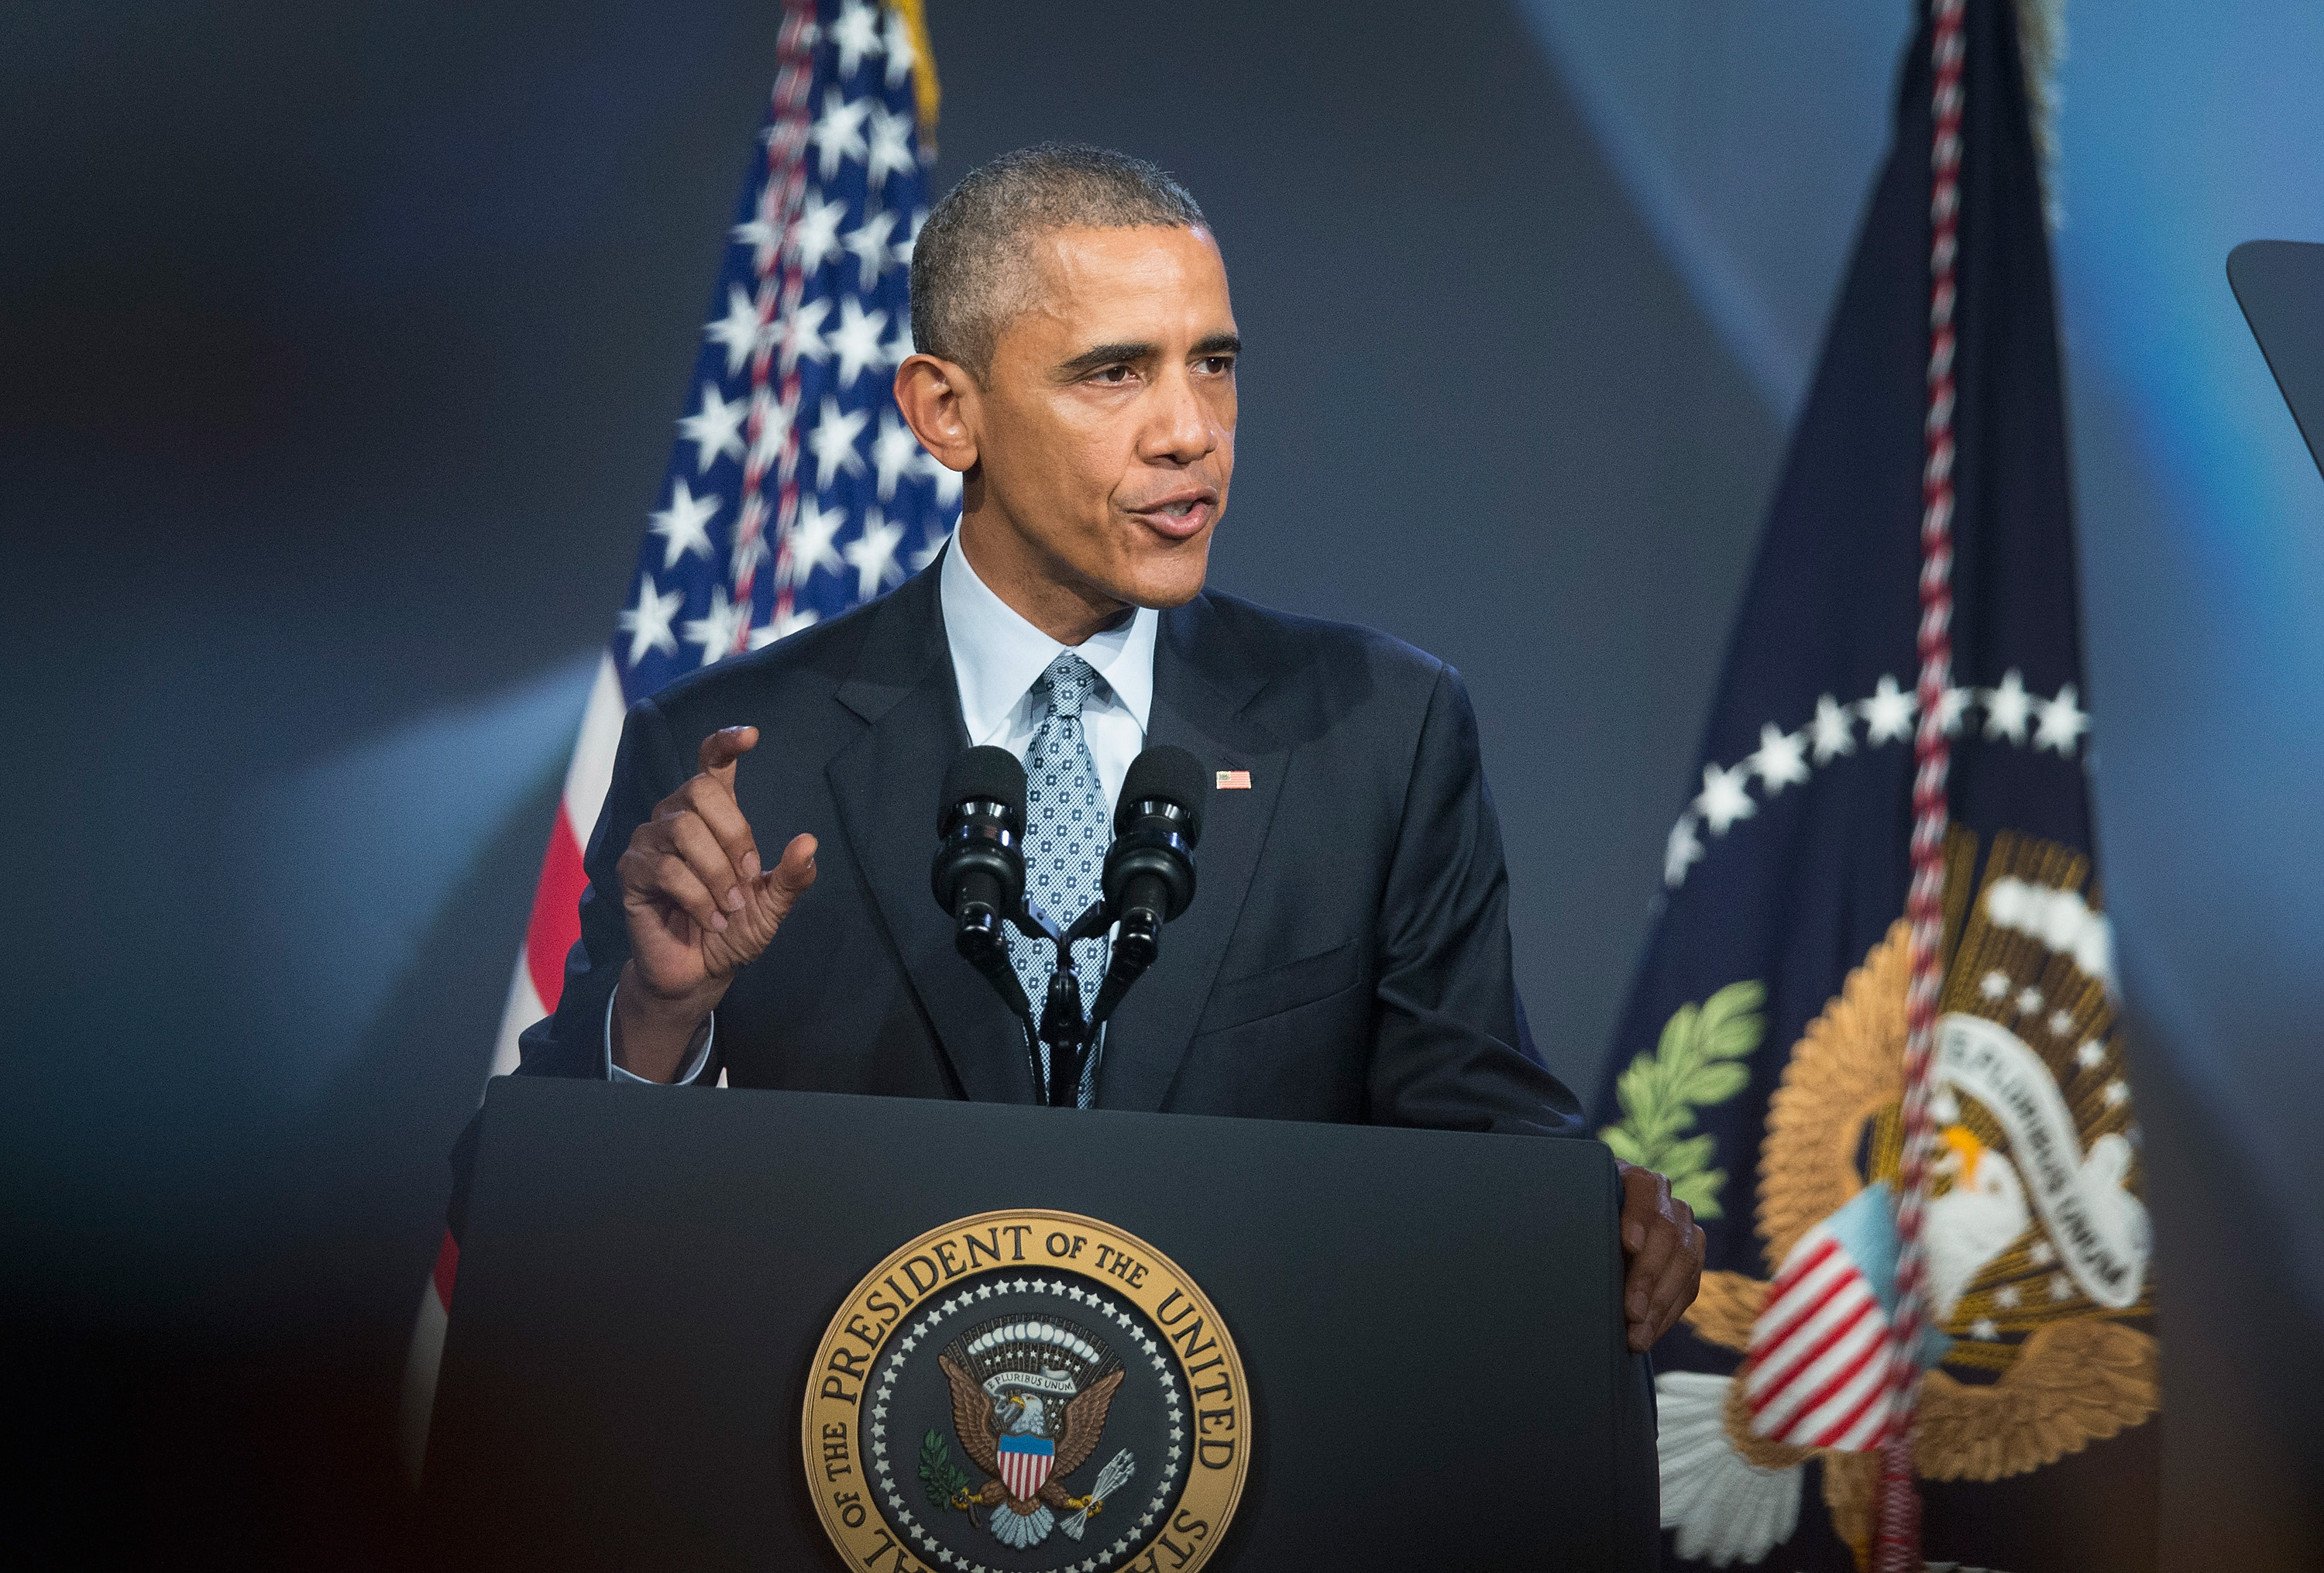 President Barack Obama is pictured on Oct. 27, 2015 in Chicago.